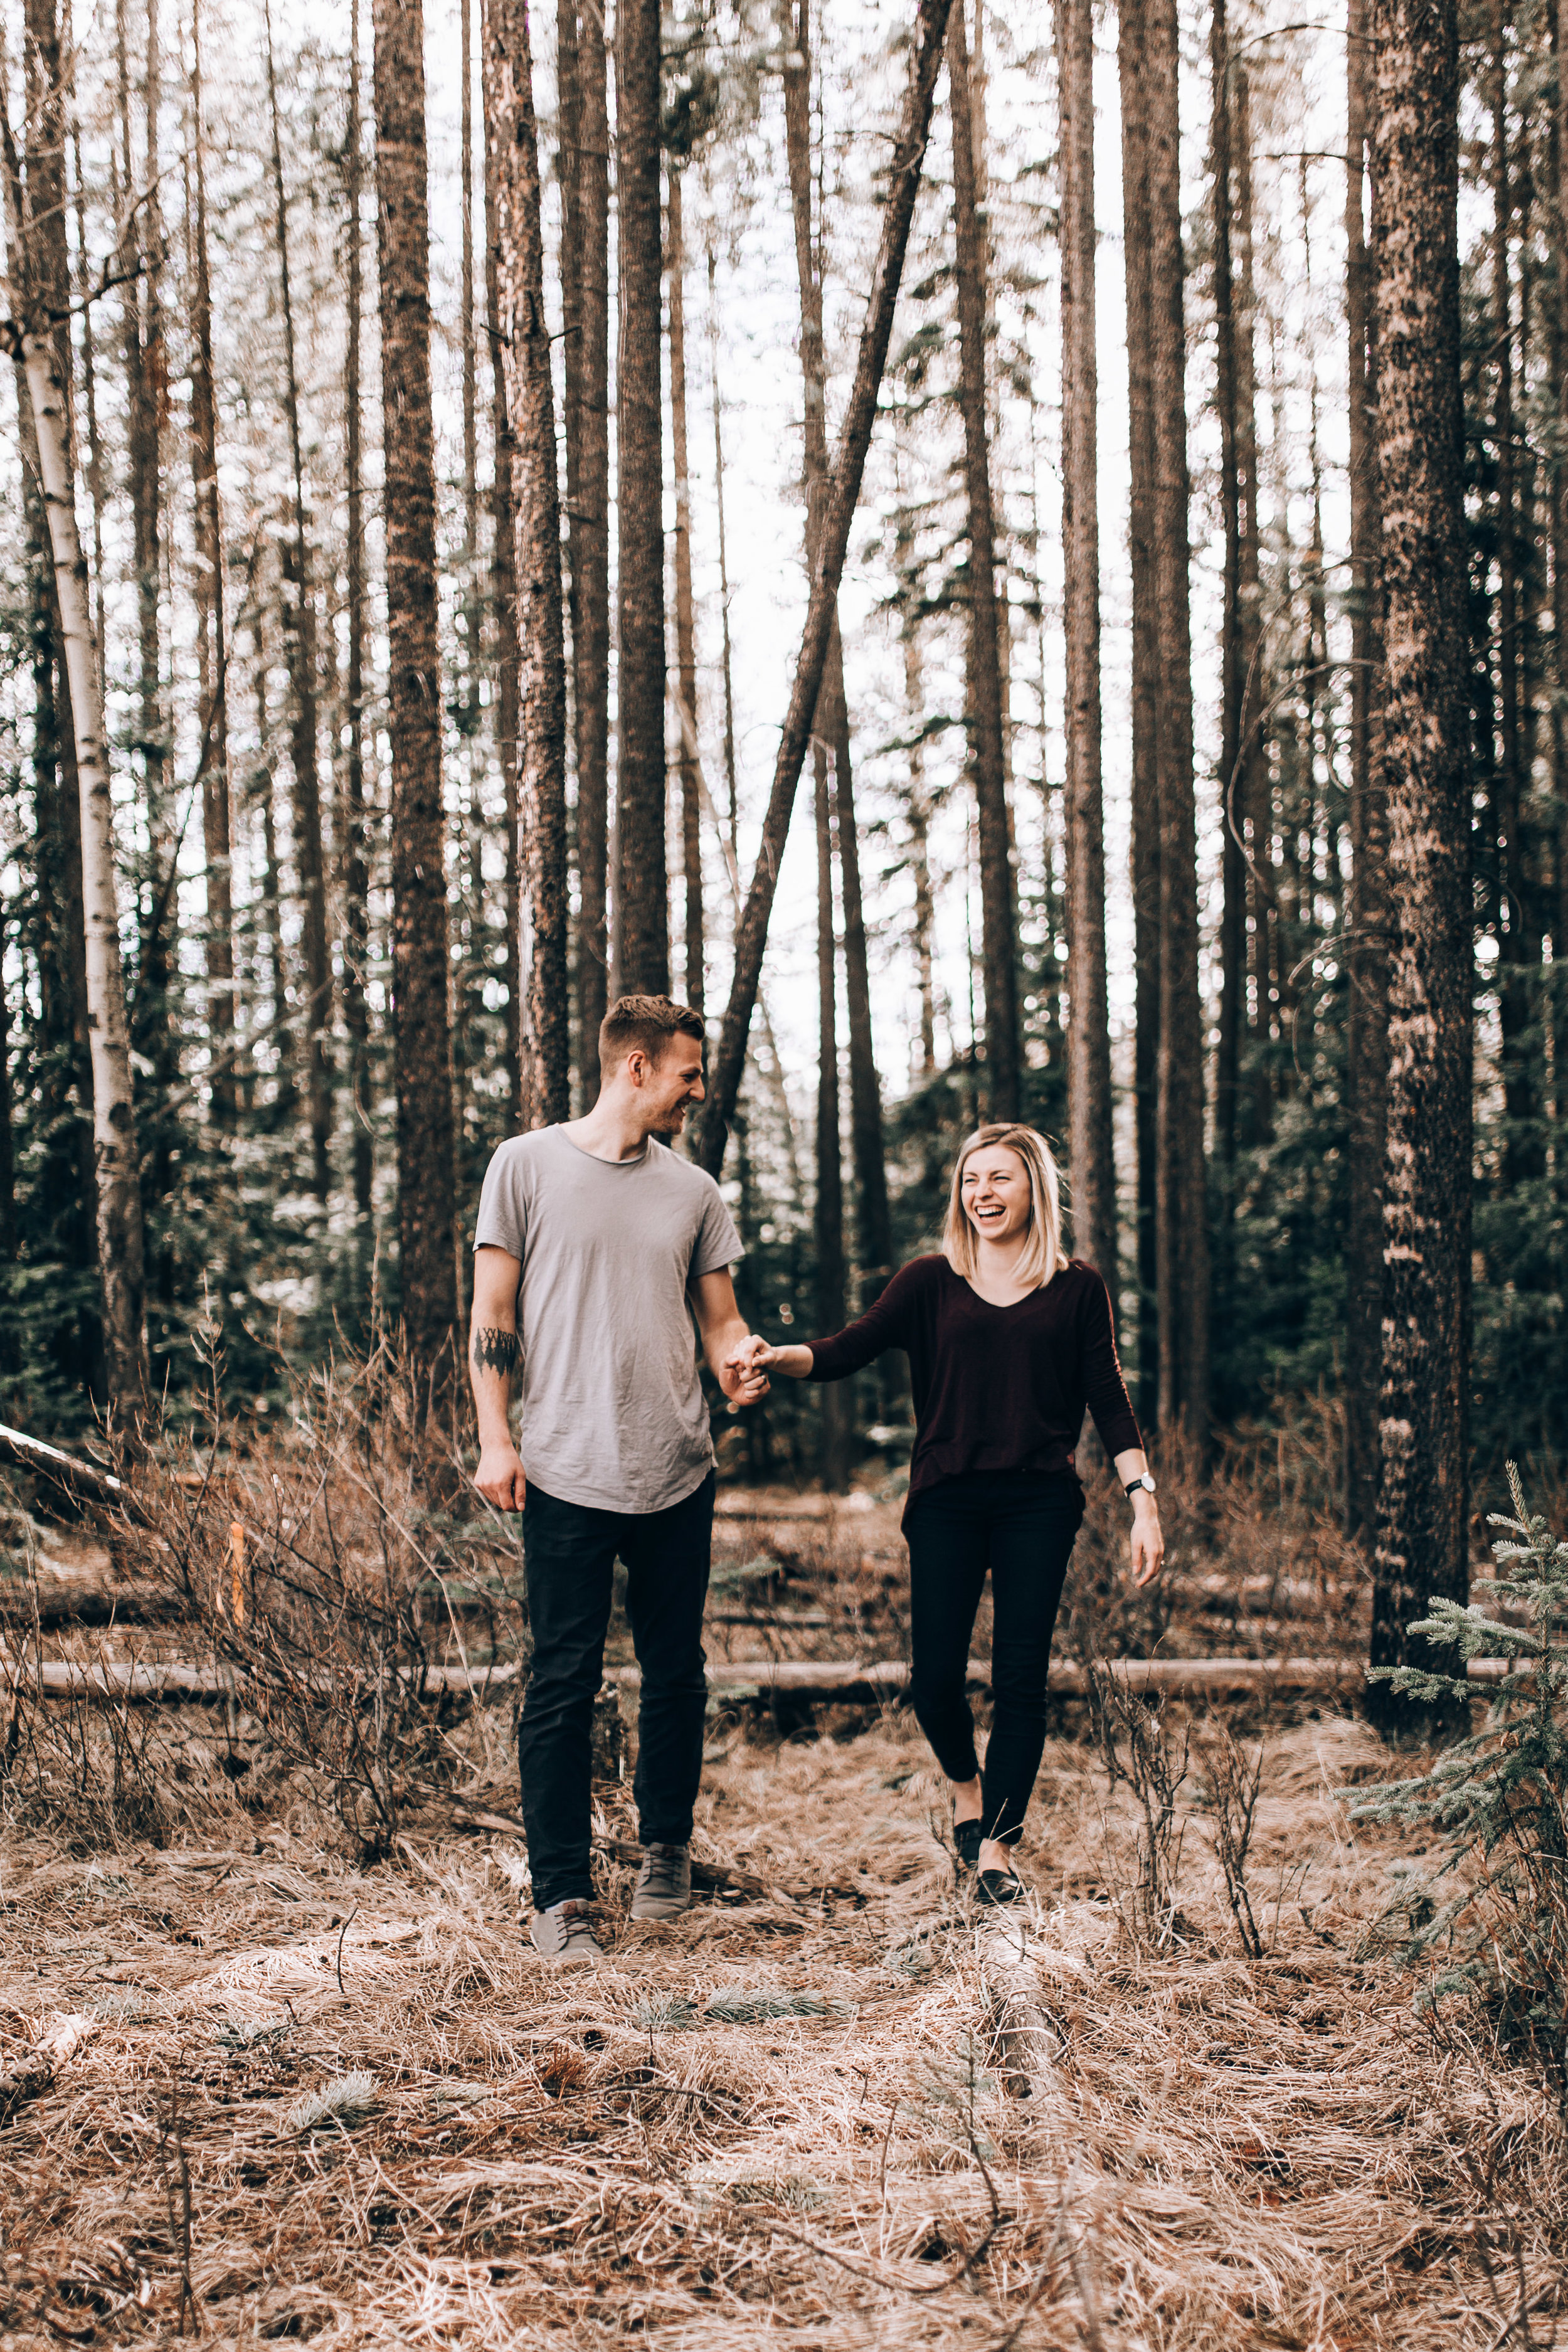 simpleperfectionsphotography.cullen+chelsey-21.jpg